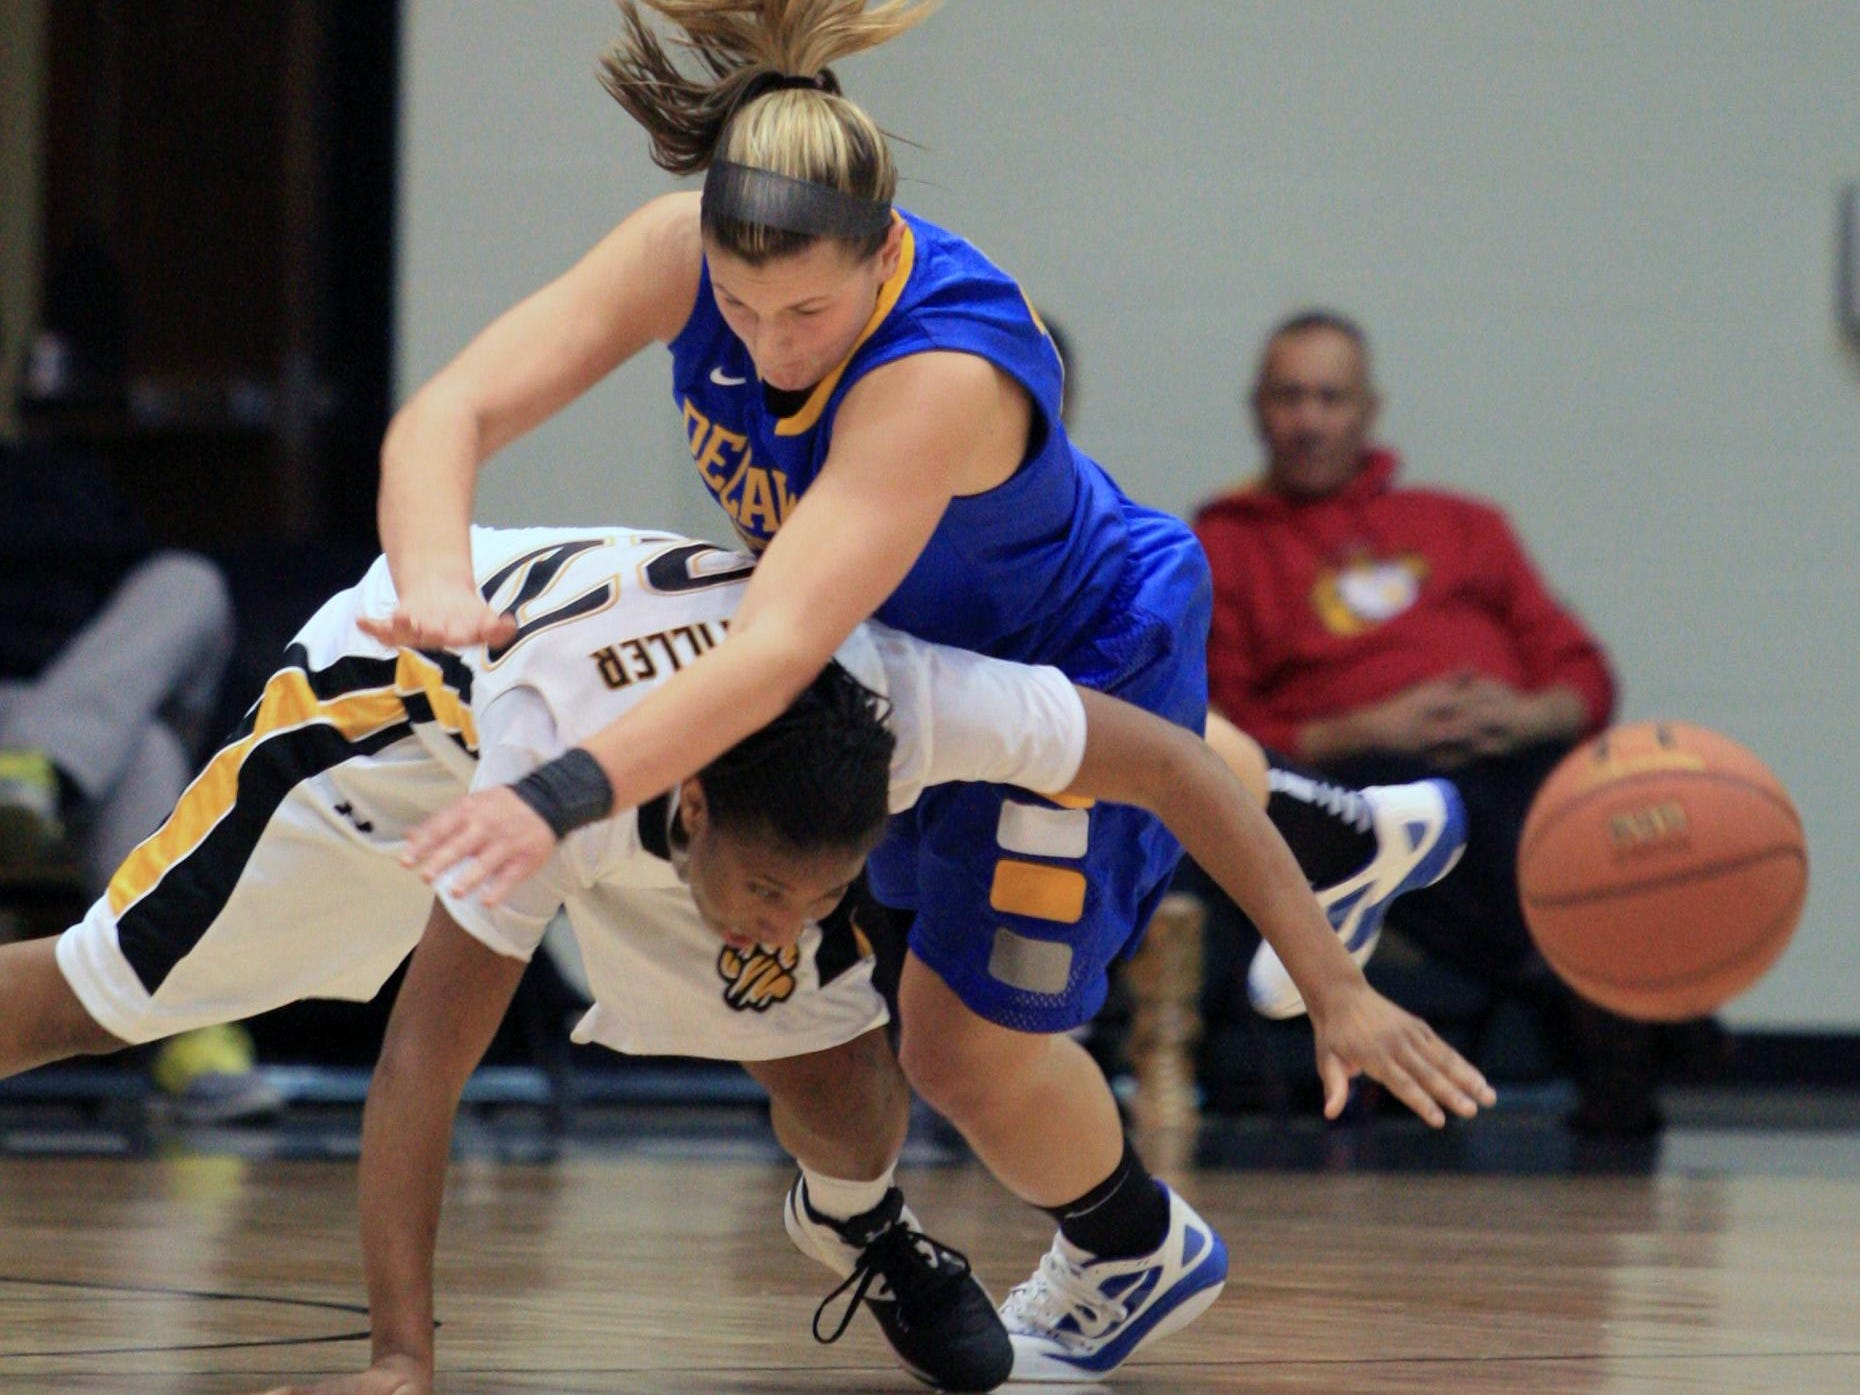 Delaware guard Lauren Carra is called for a foul as she tangles with Towson guard Tanisha McTiller in the first half.